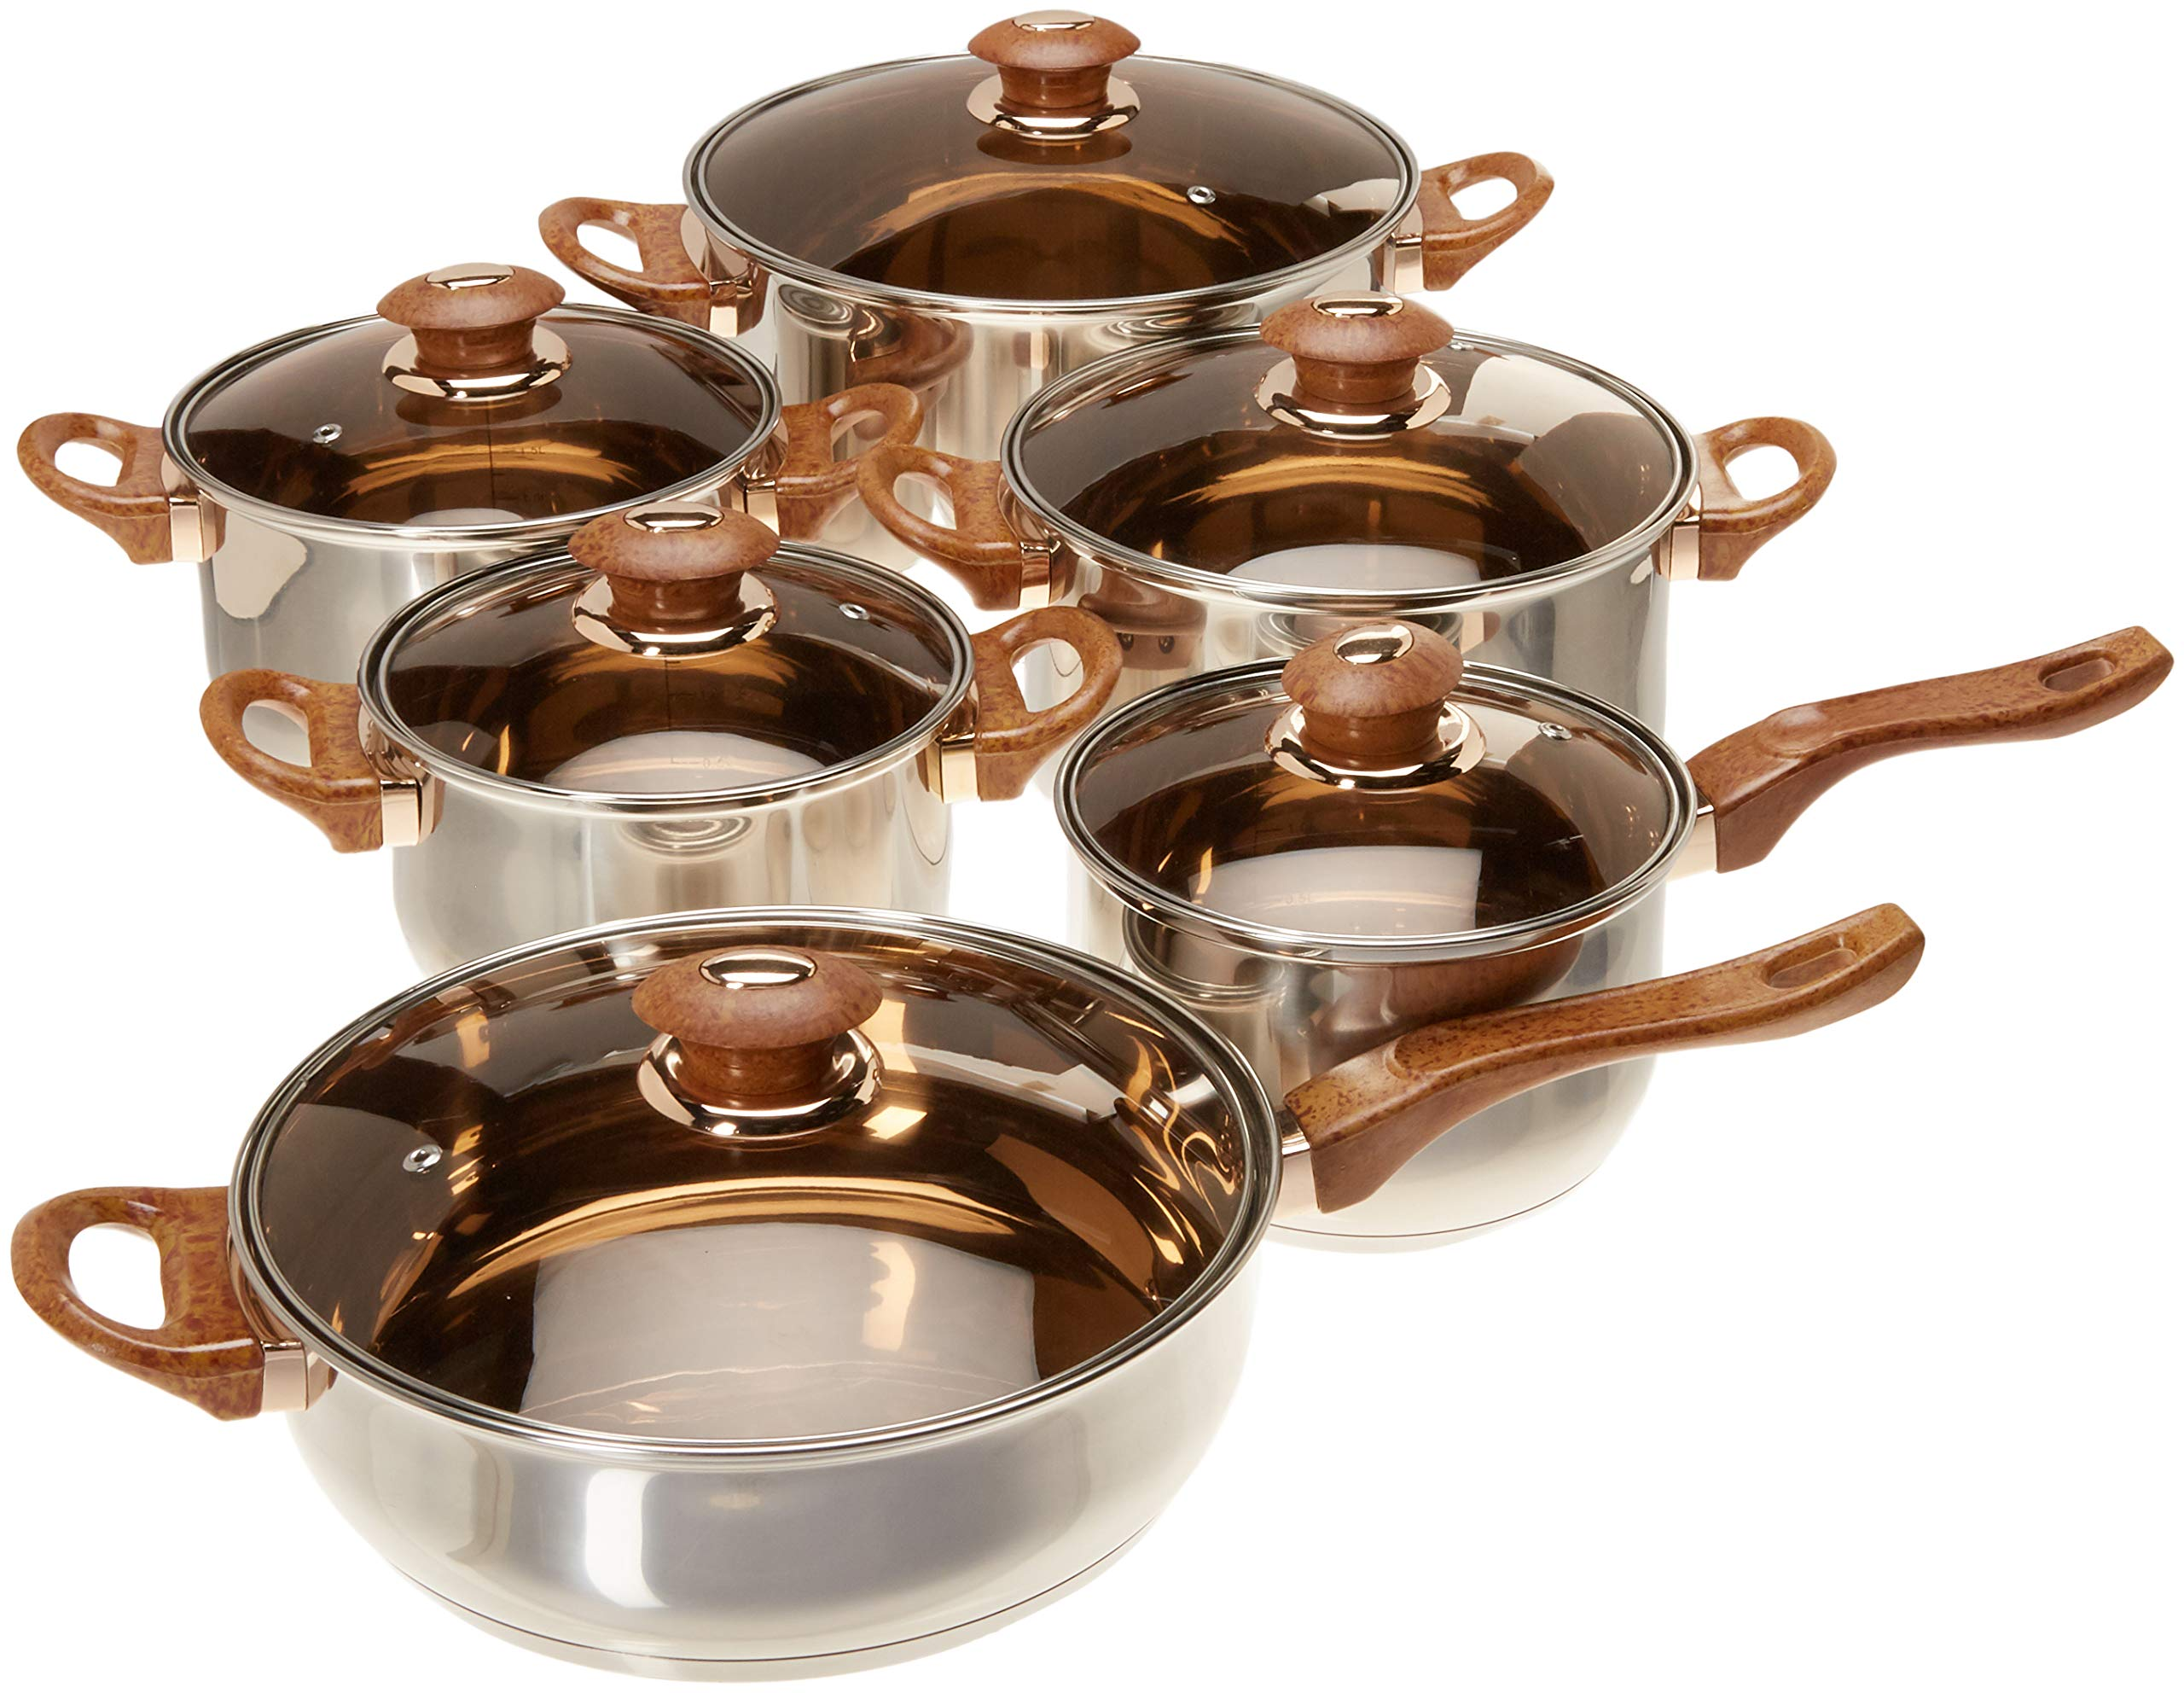 Uniware Stainless Steel Cookware Set (12 Pcs Stainless Steel Brown Handle Pot and Pan set)